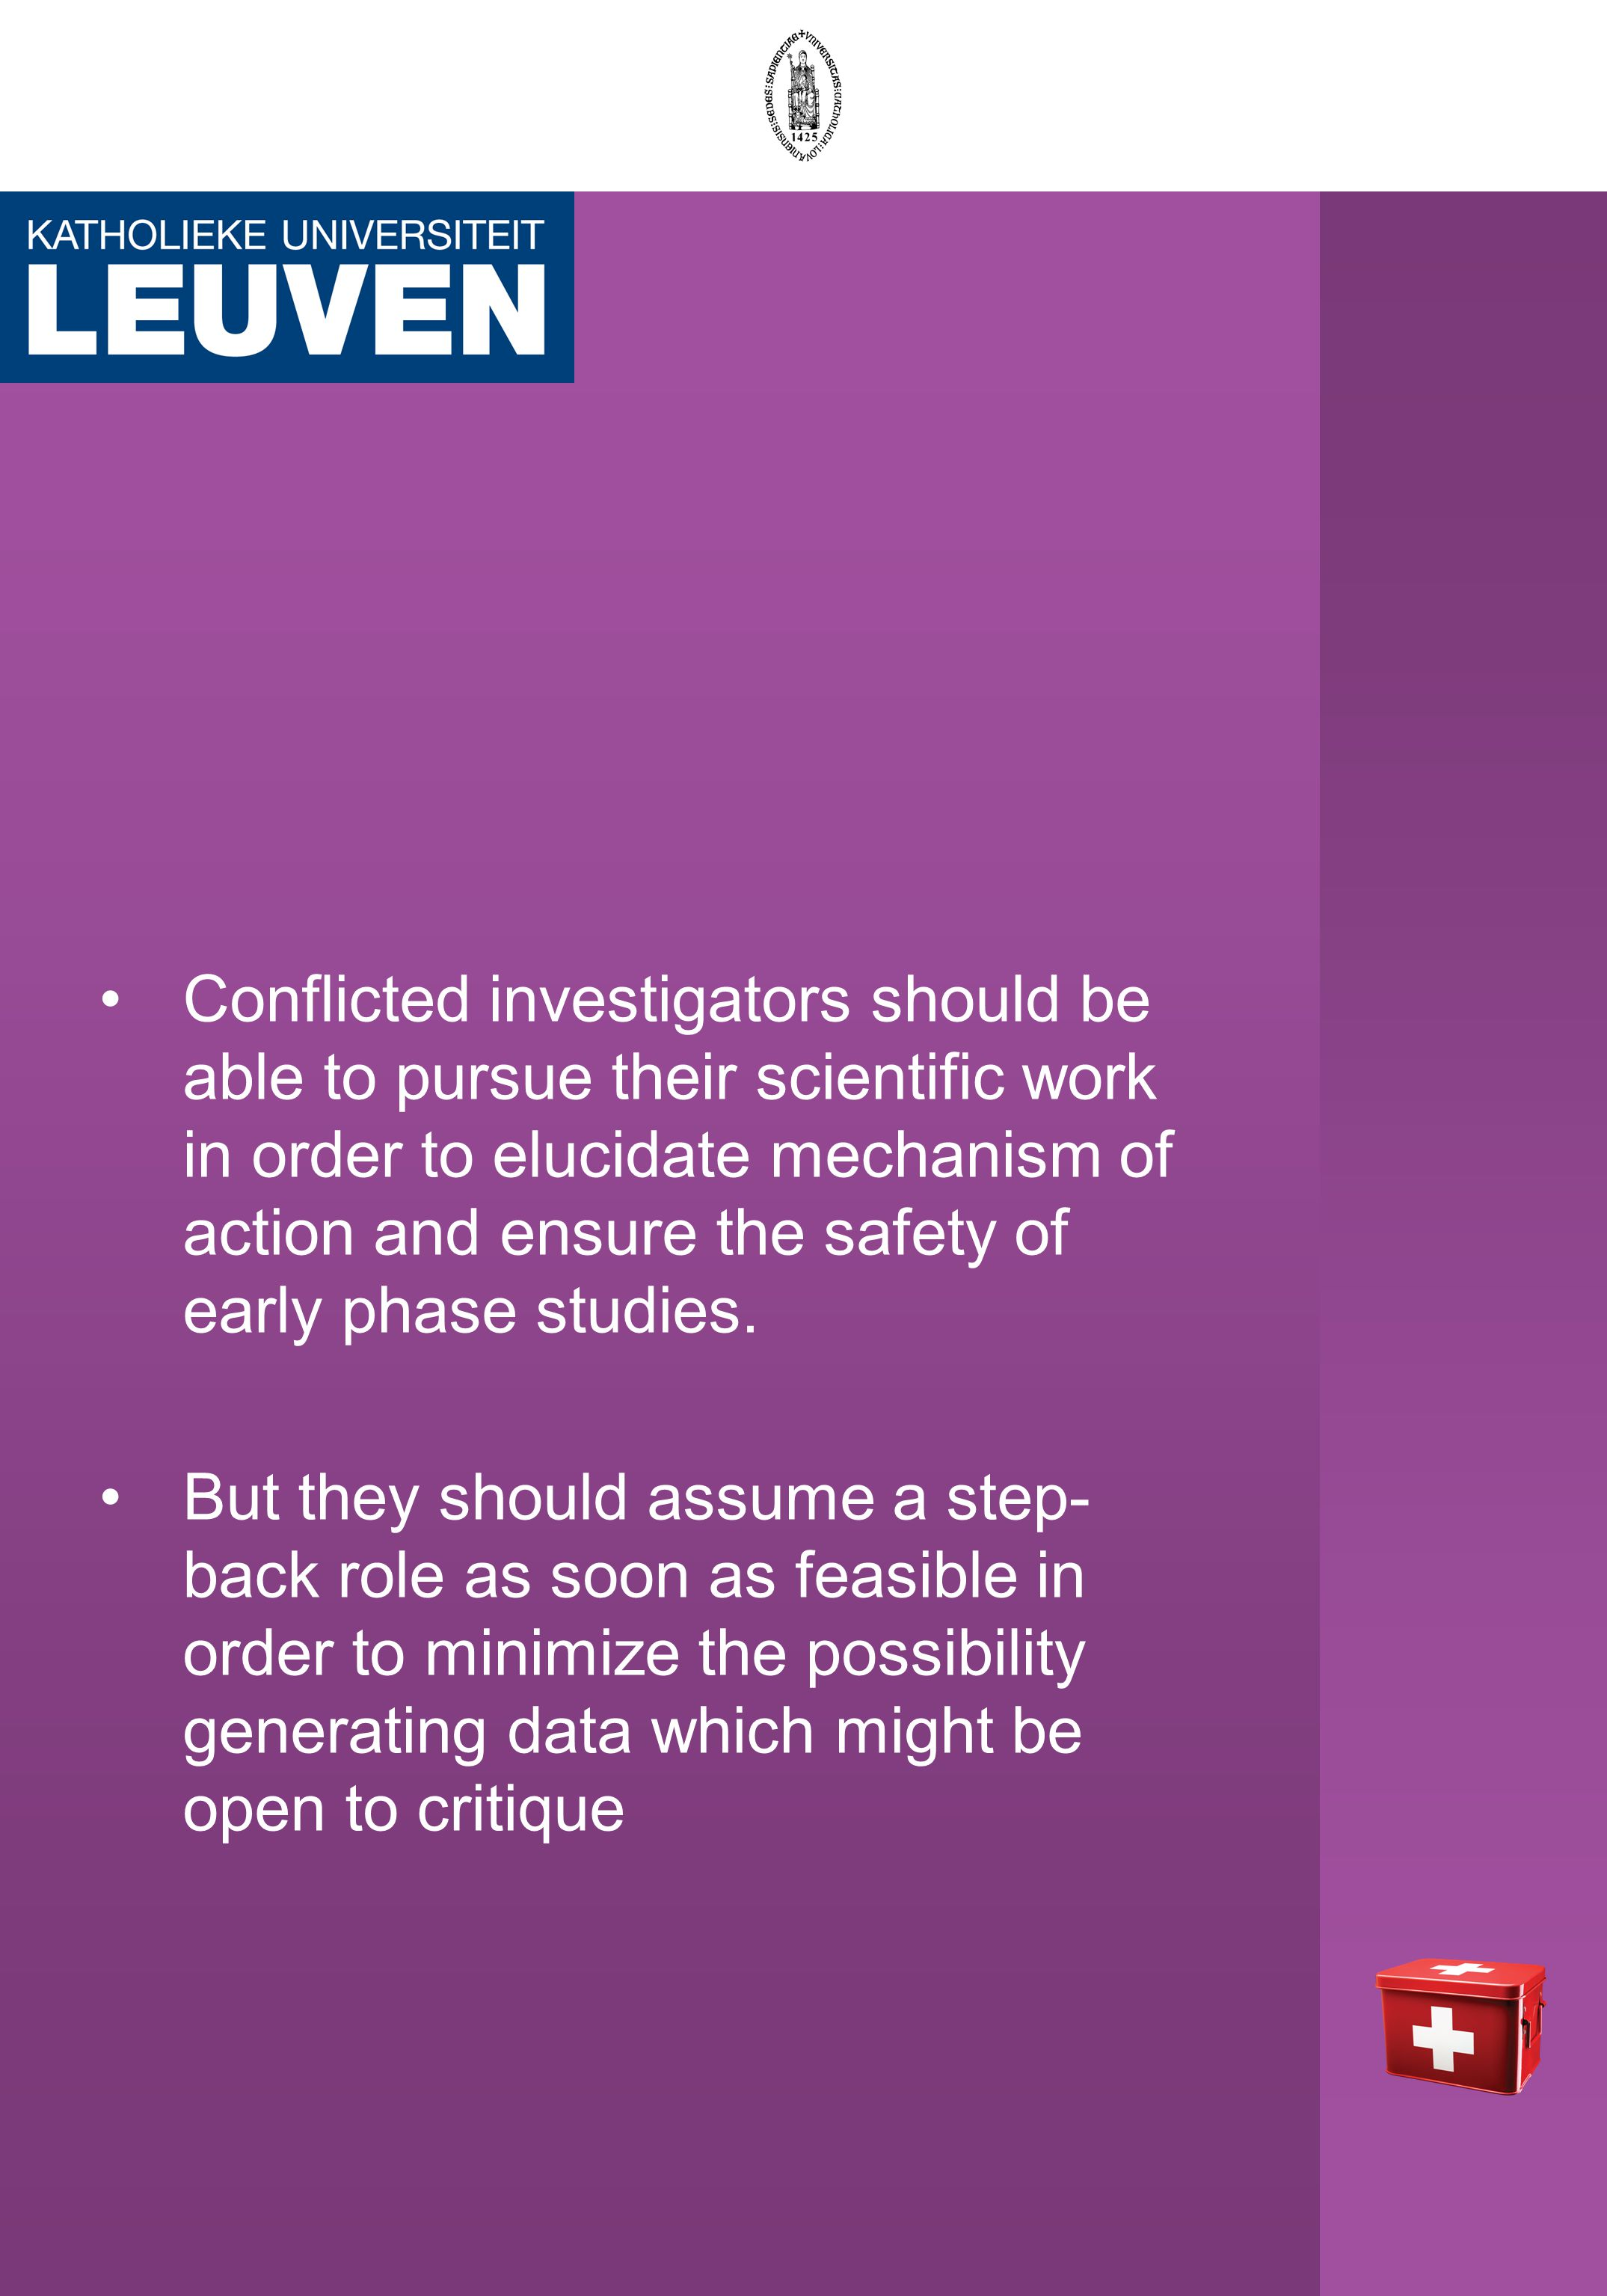 Conflicted investigators should be able to pursue their scientific work in order to elucidate mechanism of action and ensure the safety of early phase studies.